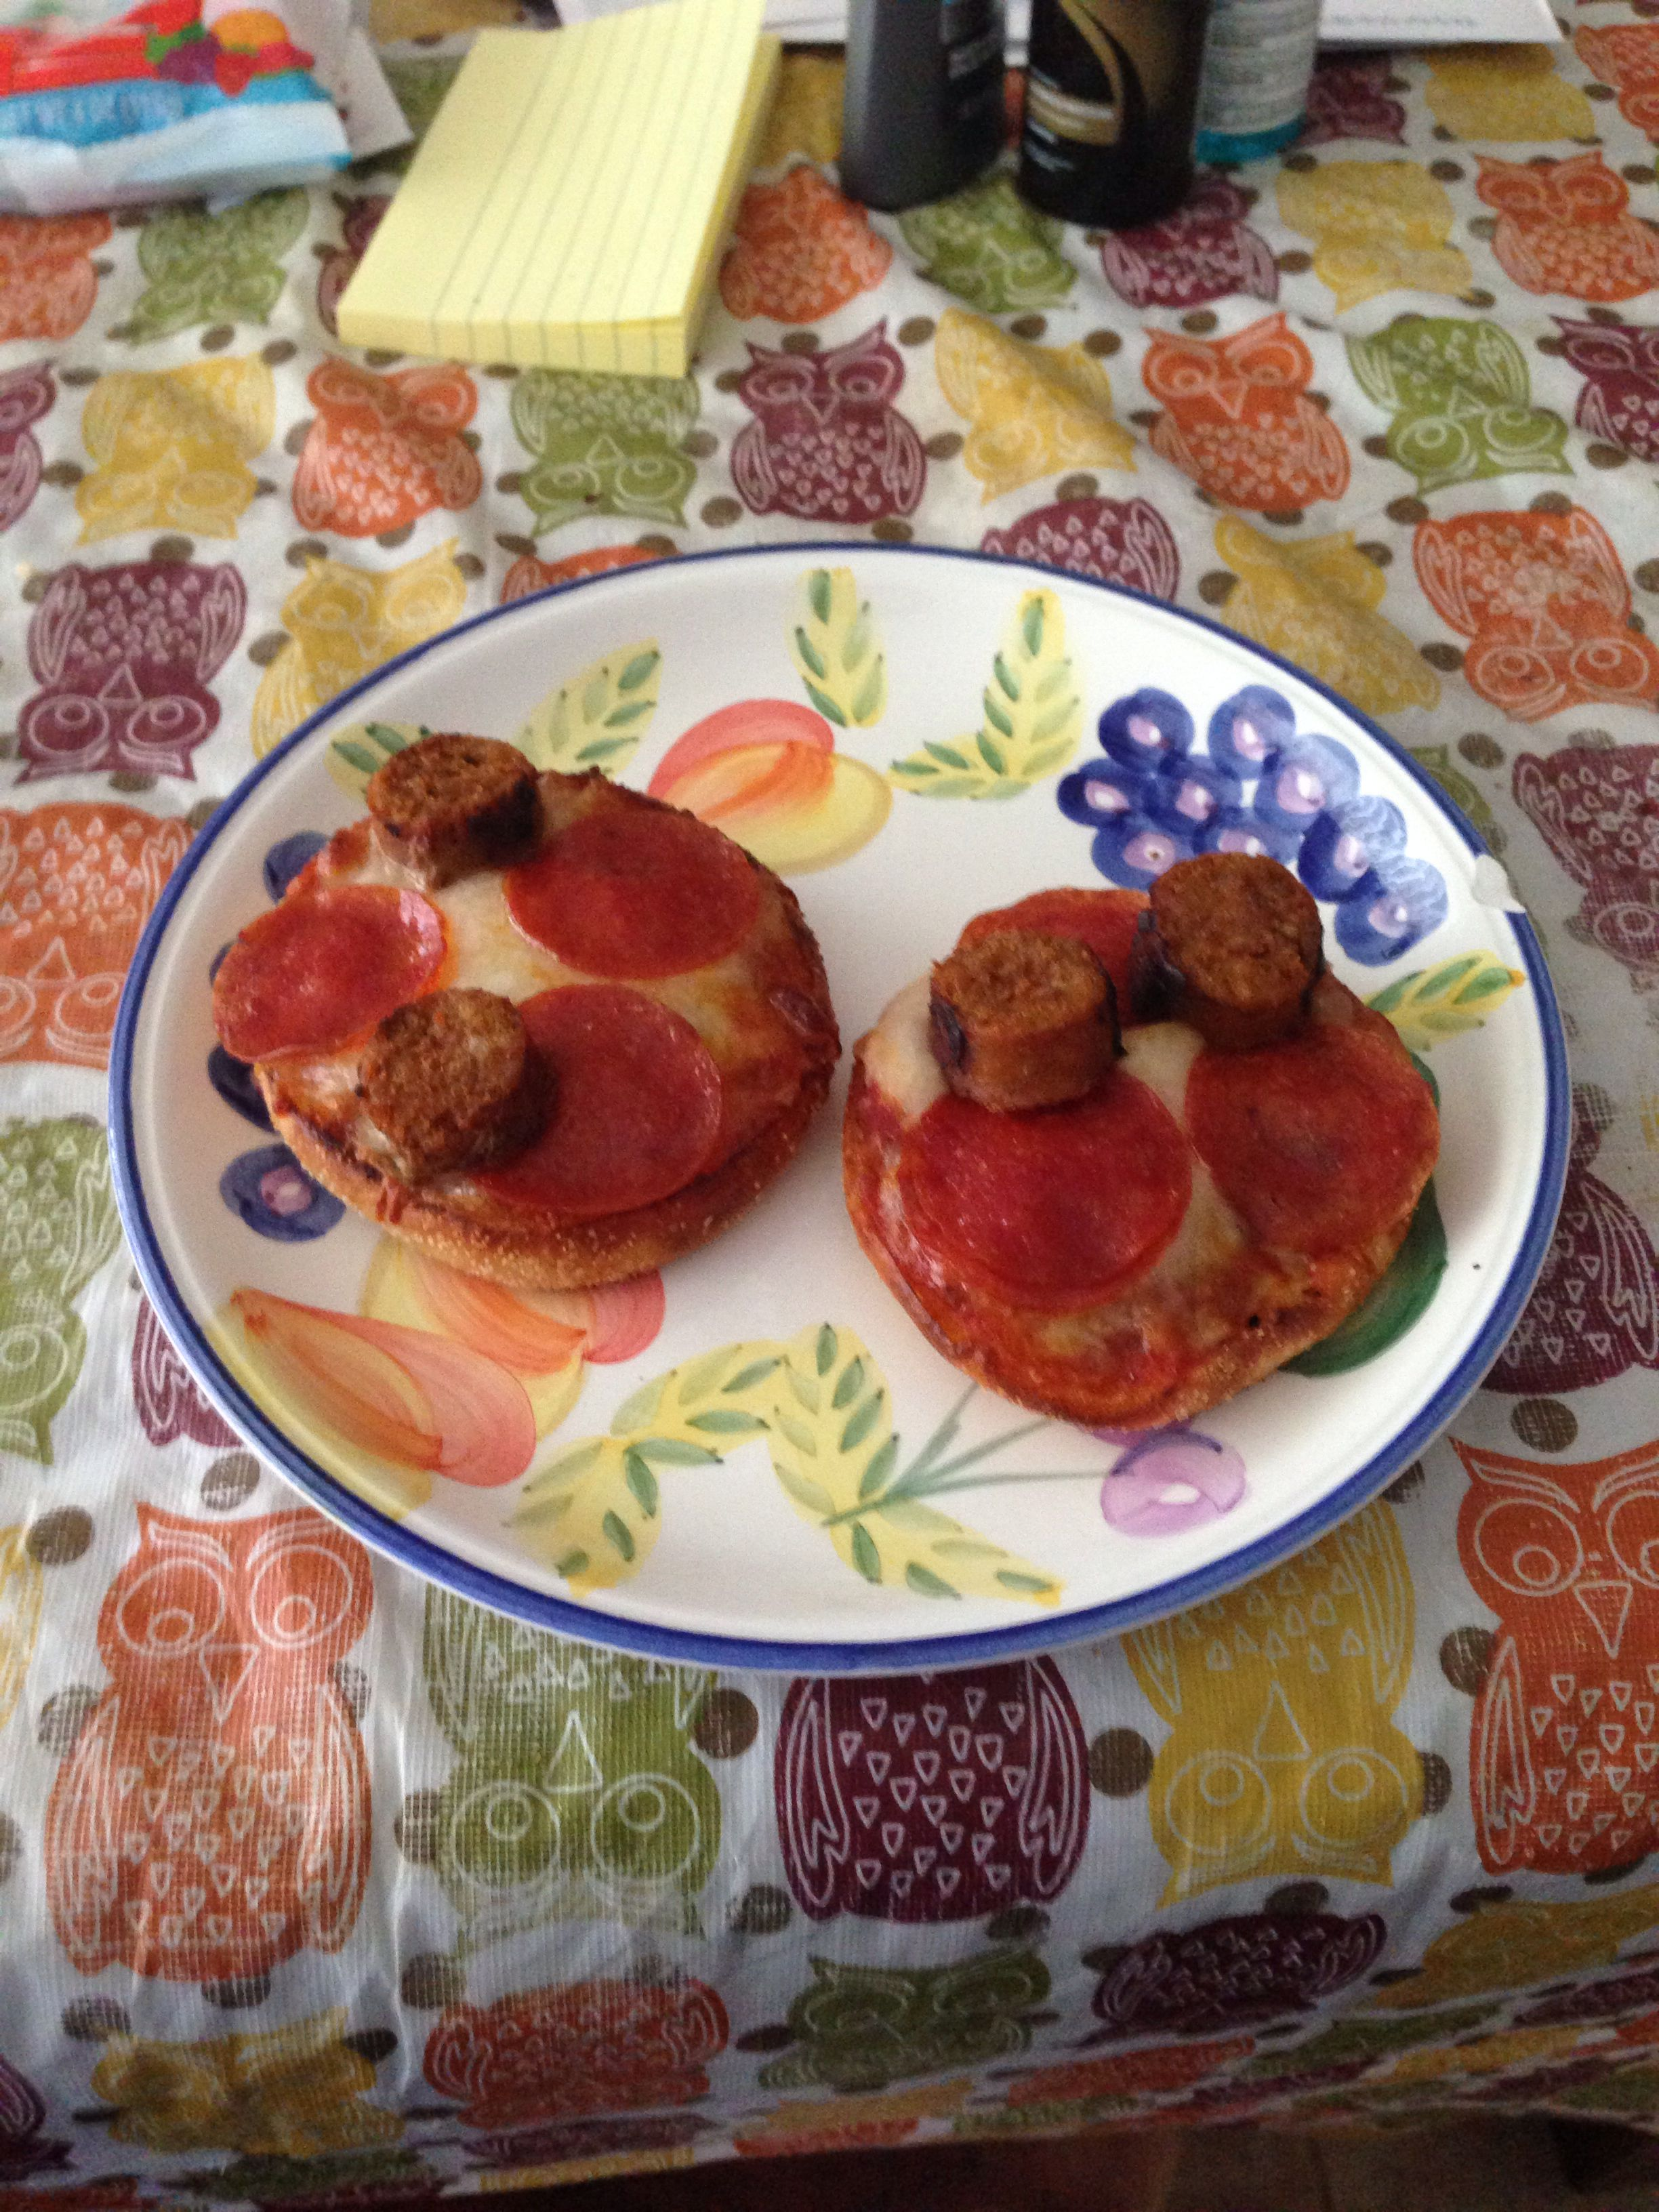 Made some English muffin pizzas today for Aldela & me!!